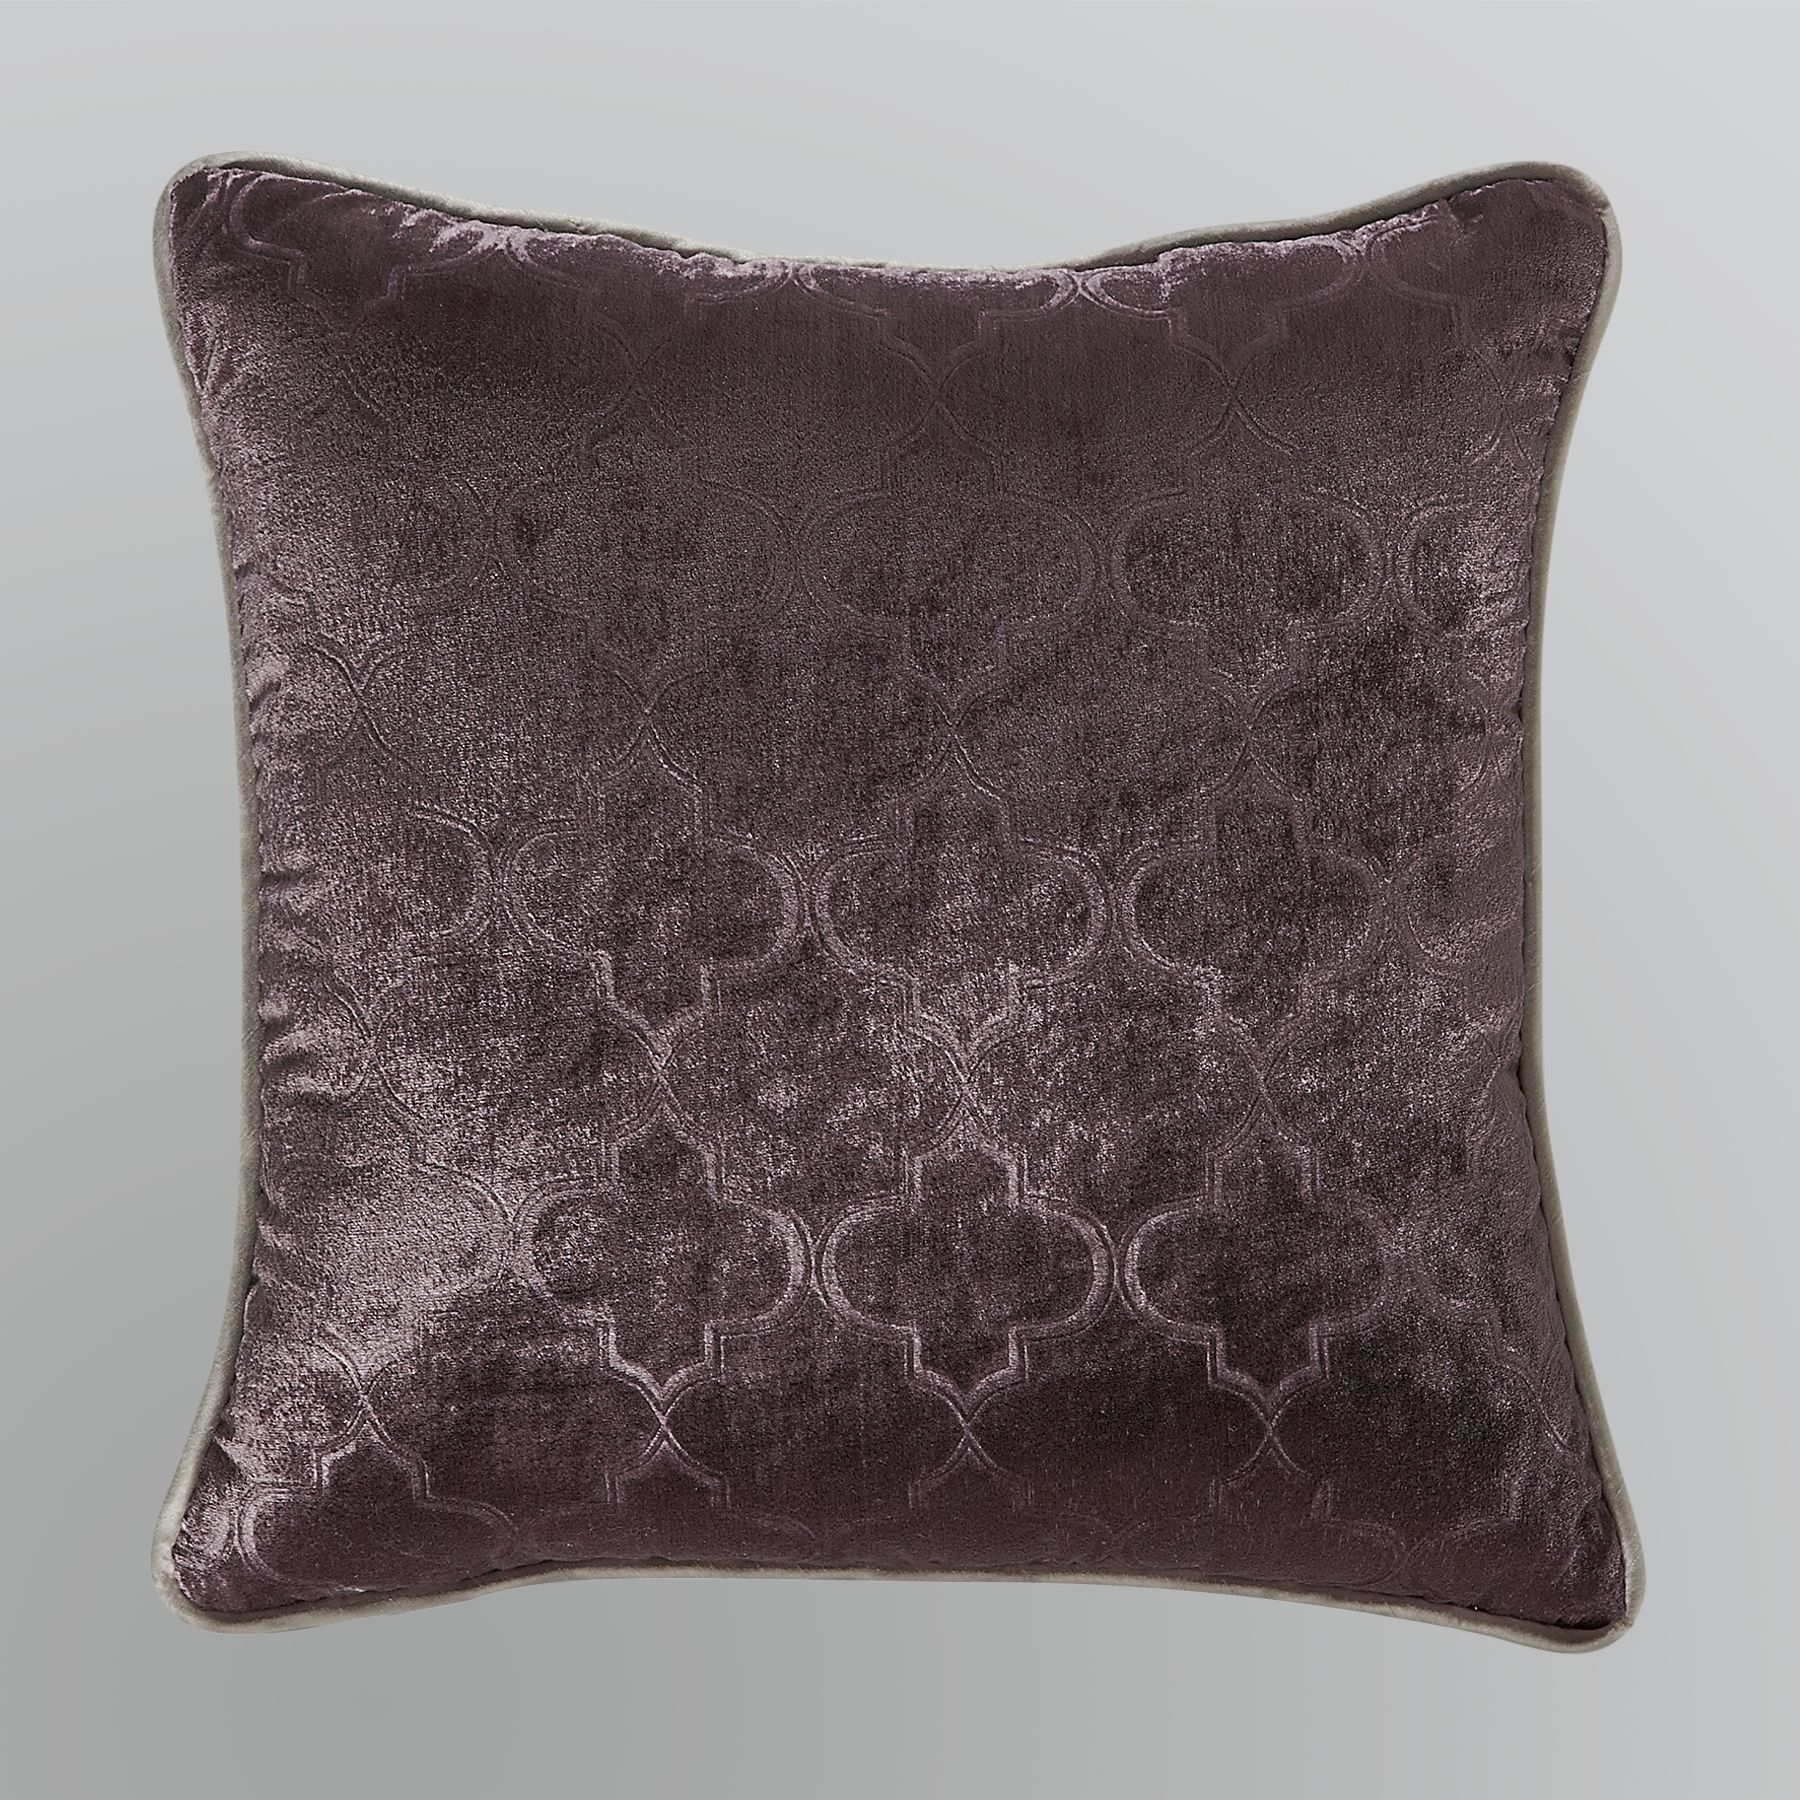 Traditions Bliss Pressed Velvet Pillow